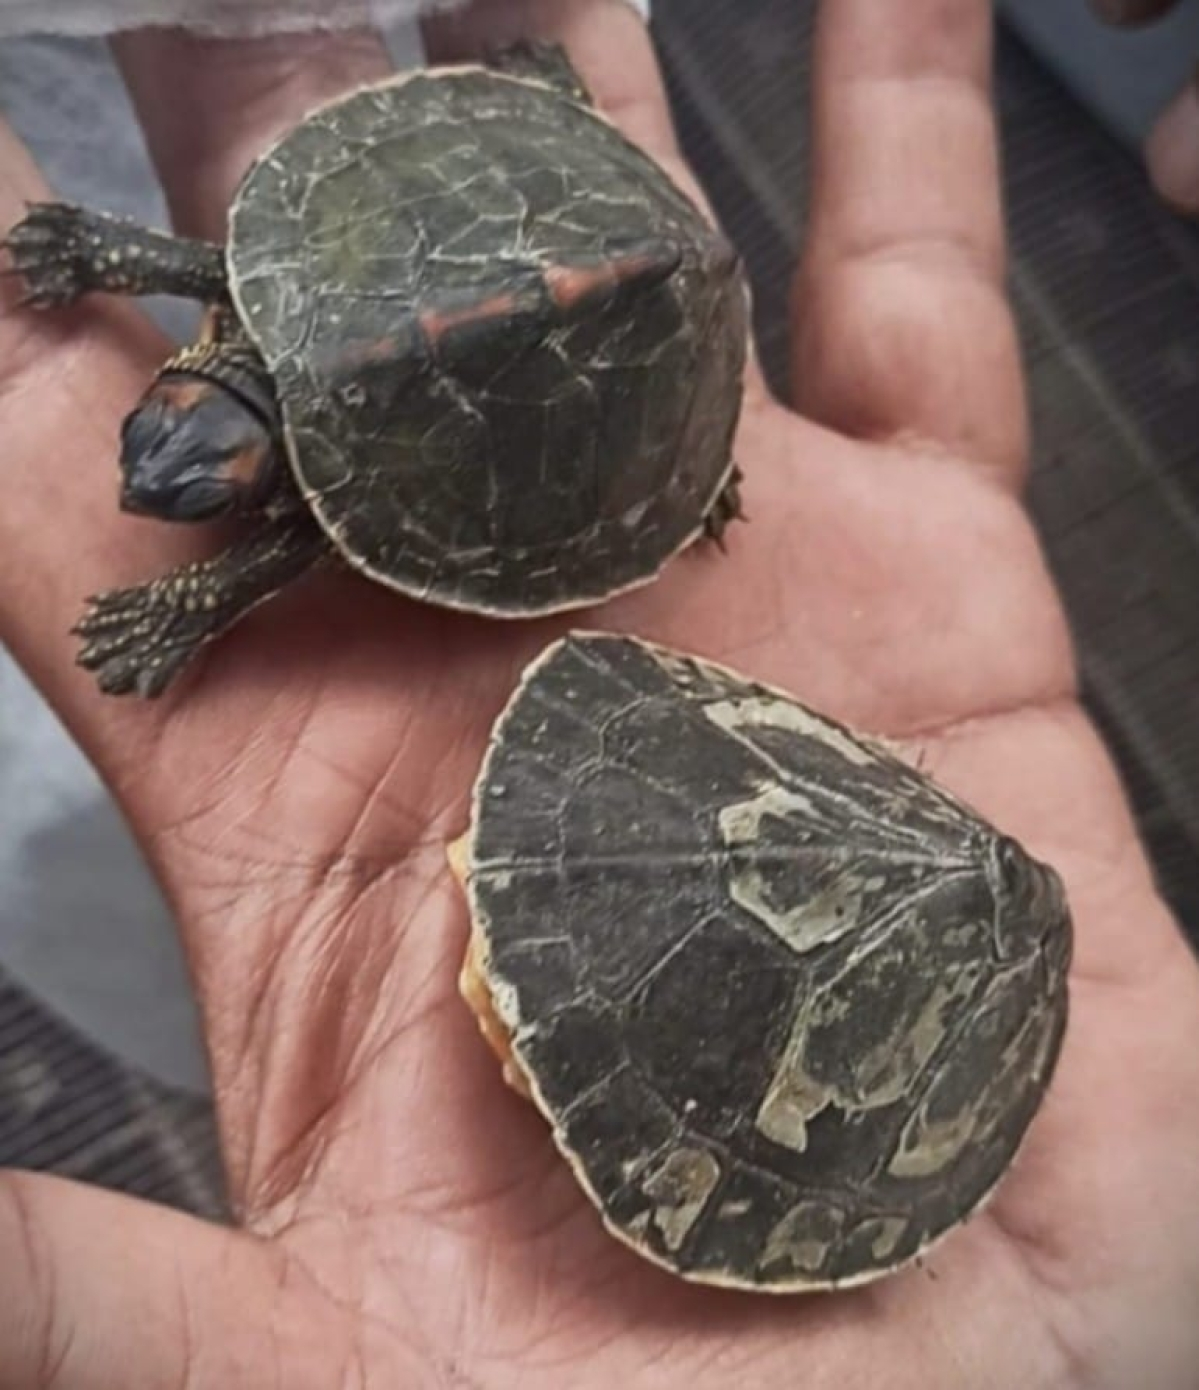 Indore: Man held with 2 Australian turtles worth Rs 2L that he had taken from a man in Bhopal